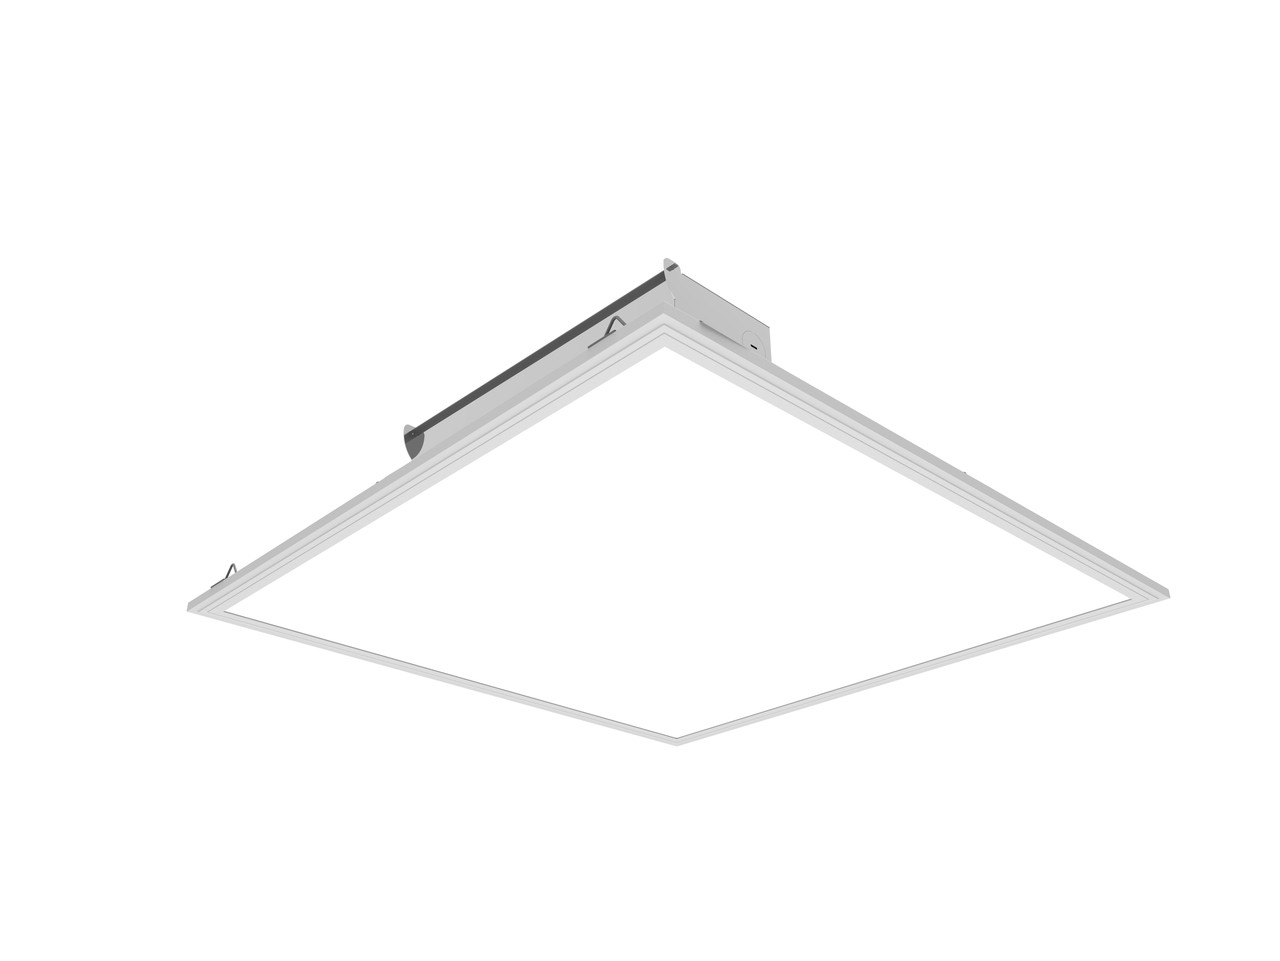 Led Flat Panel 2x2 5000k Daylight Dimmable With Extra Surface Mount Kit